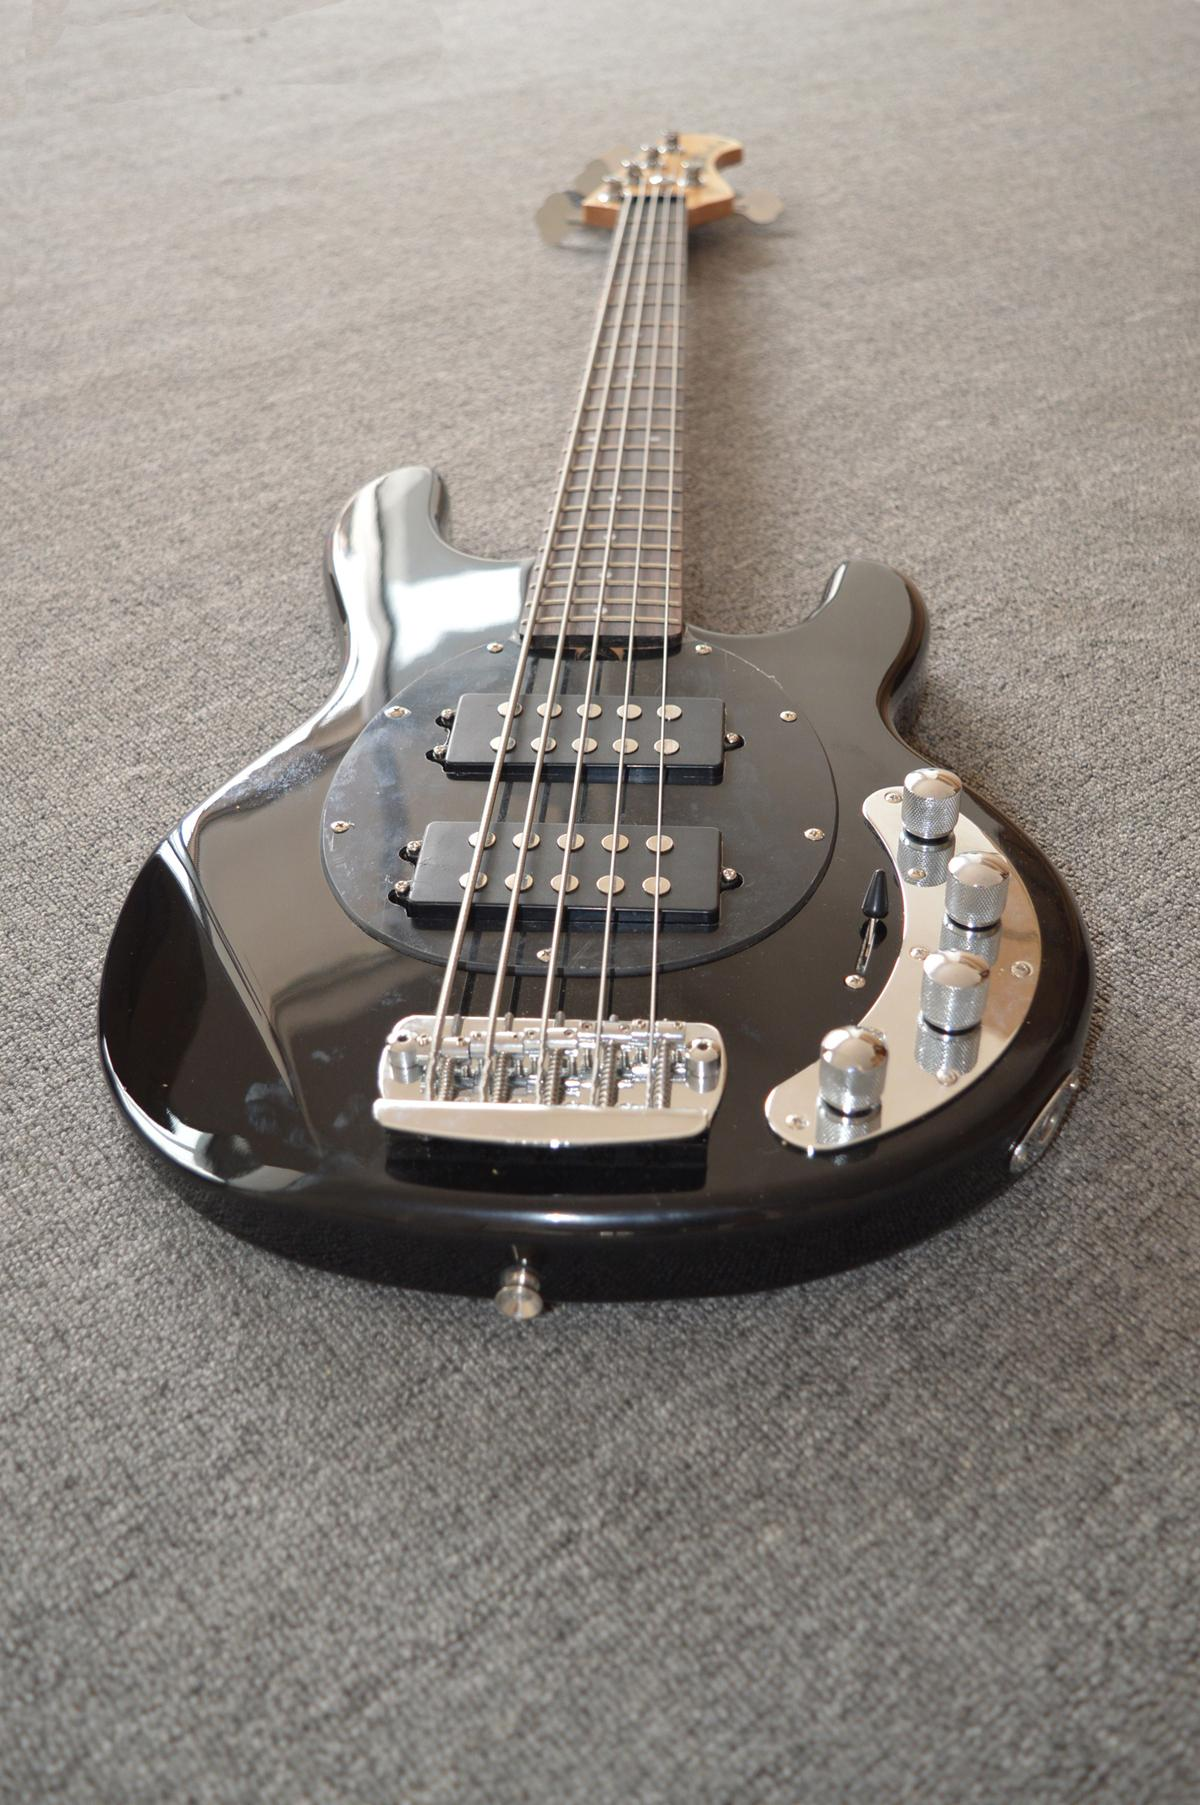 Top Quality Low Price Bass Guitar China Factory Guitar 5 String 4003